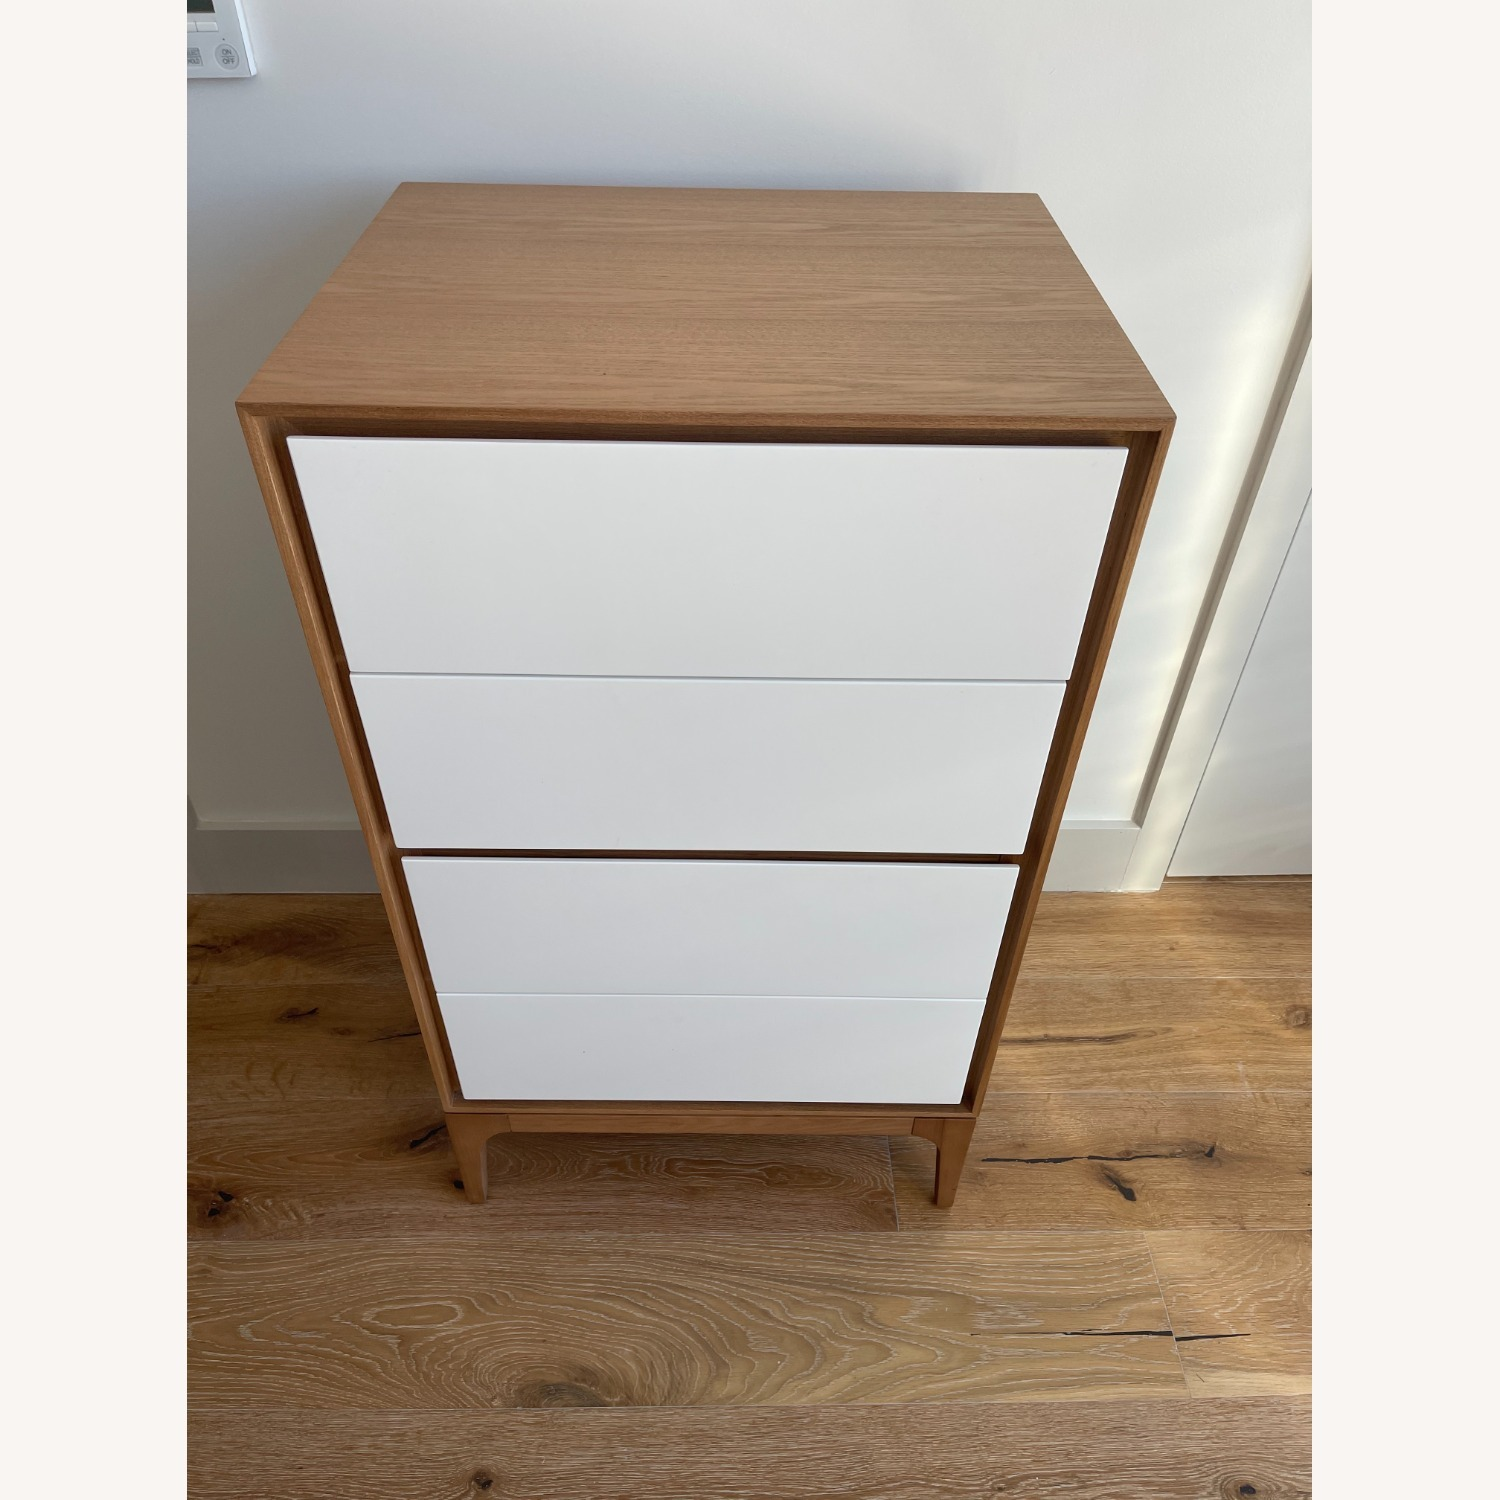 Rove Concepts 2X Wooden Dressers with White Drawers - image-2